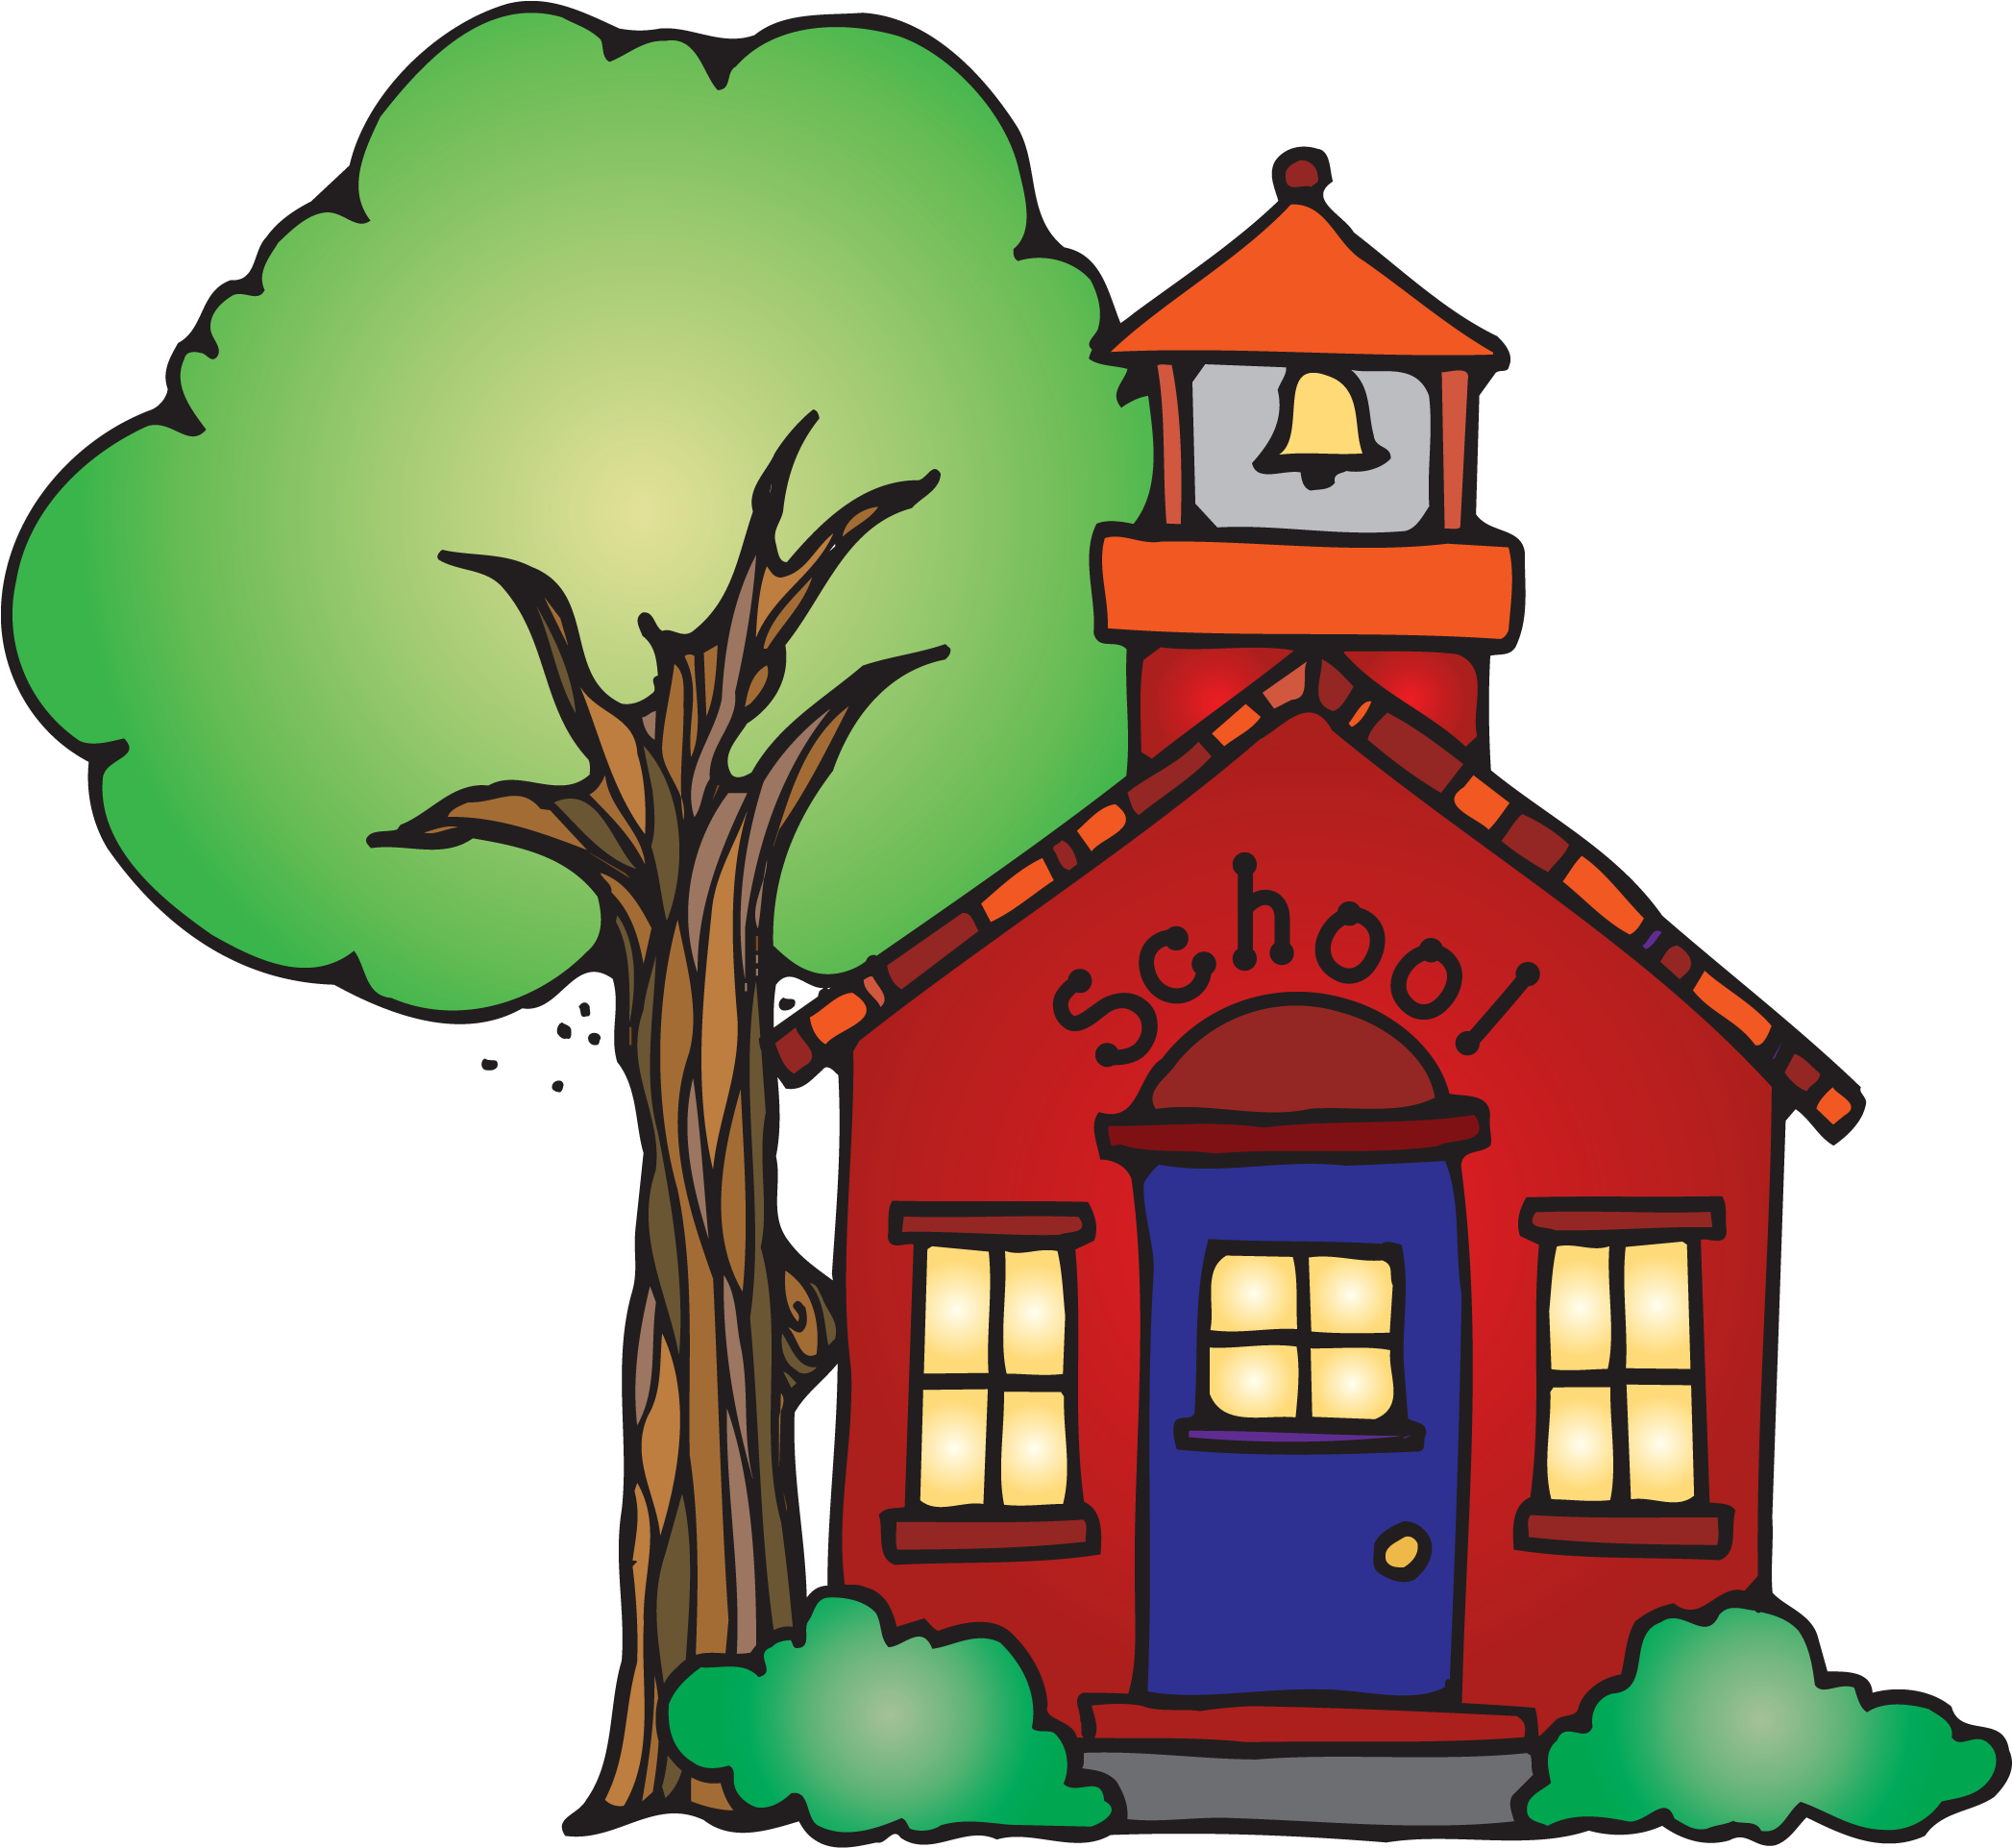 Schoolhouse clipart clear background. Hd png royalty free